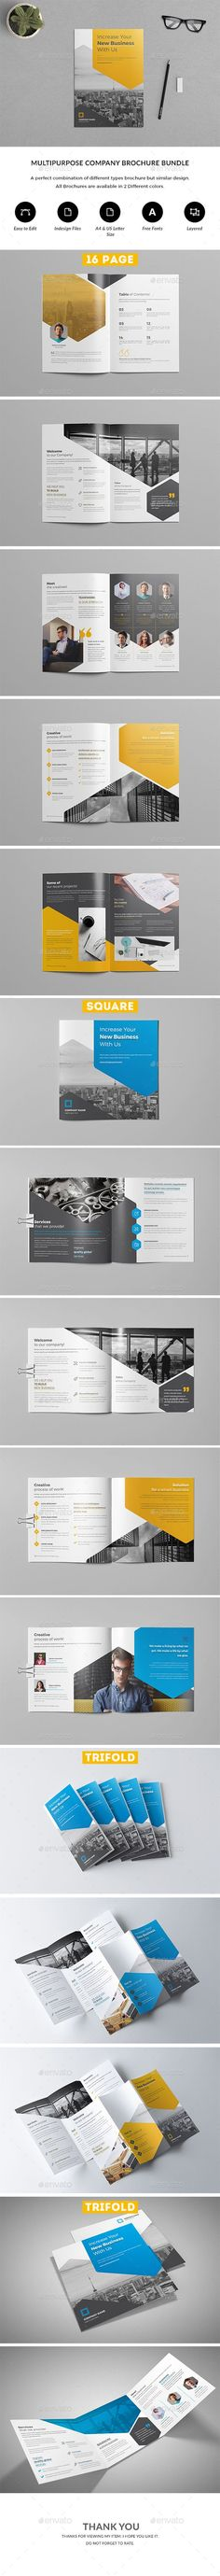 Company Profile Brochure Bundle Company Profile Template, Page Number, Corporate Brochure, Minimal Design, Brochure Template, Infographic, Morning Person, Templates, Minimalist Design